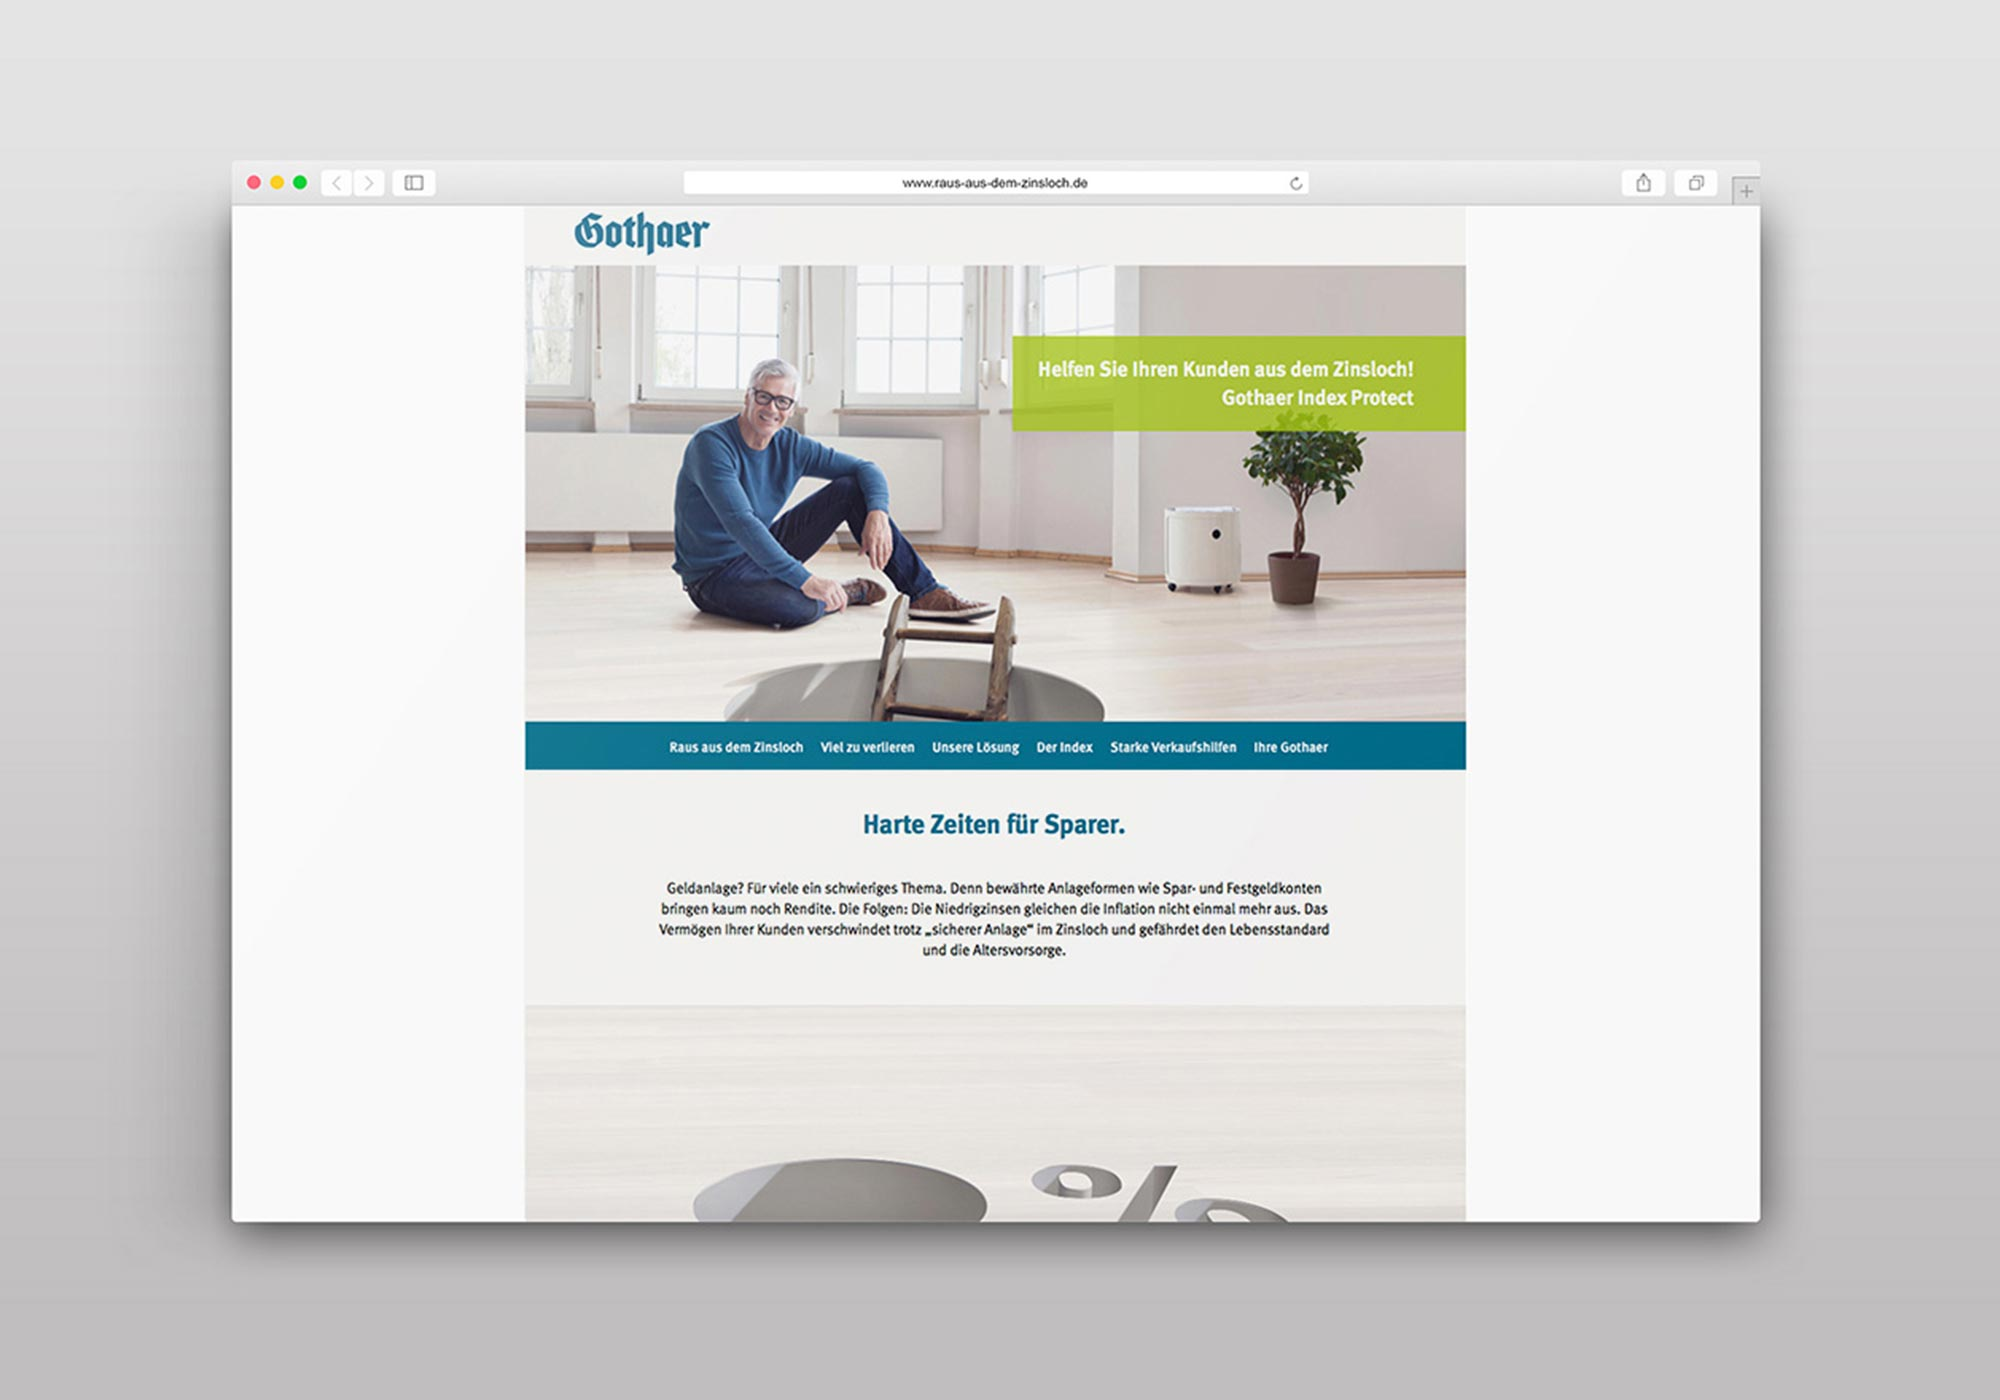 001_Indexprotect_Microsite